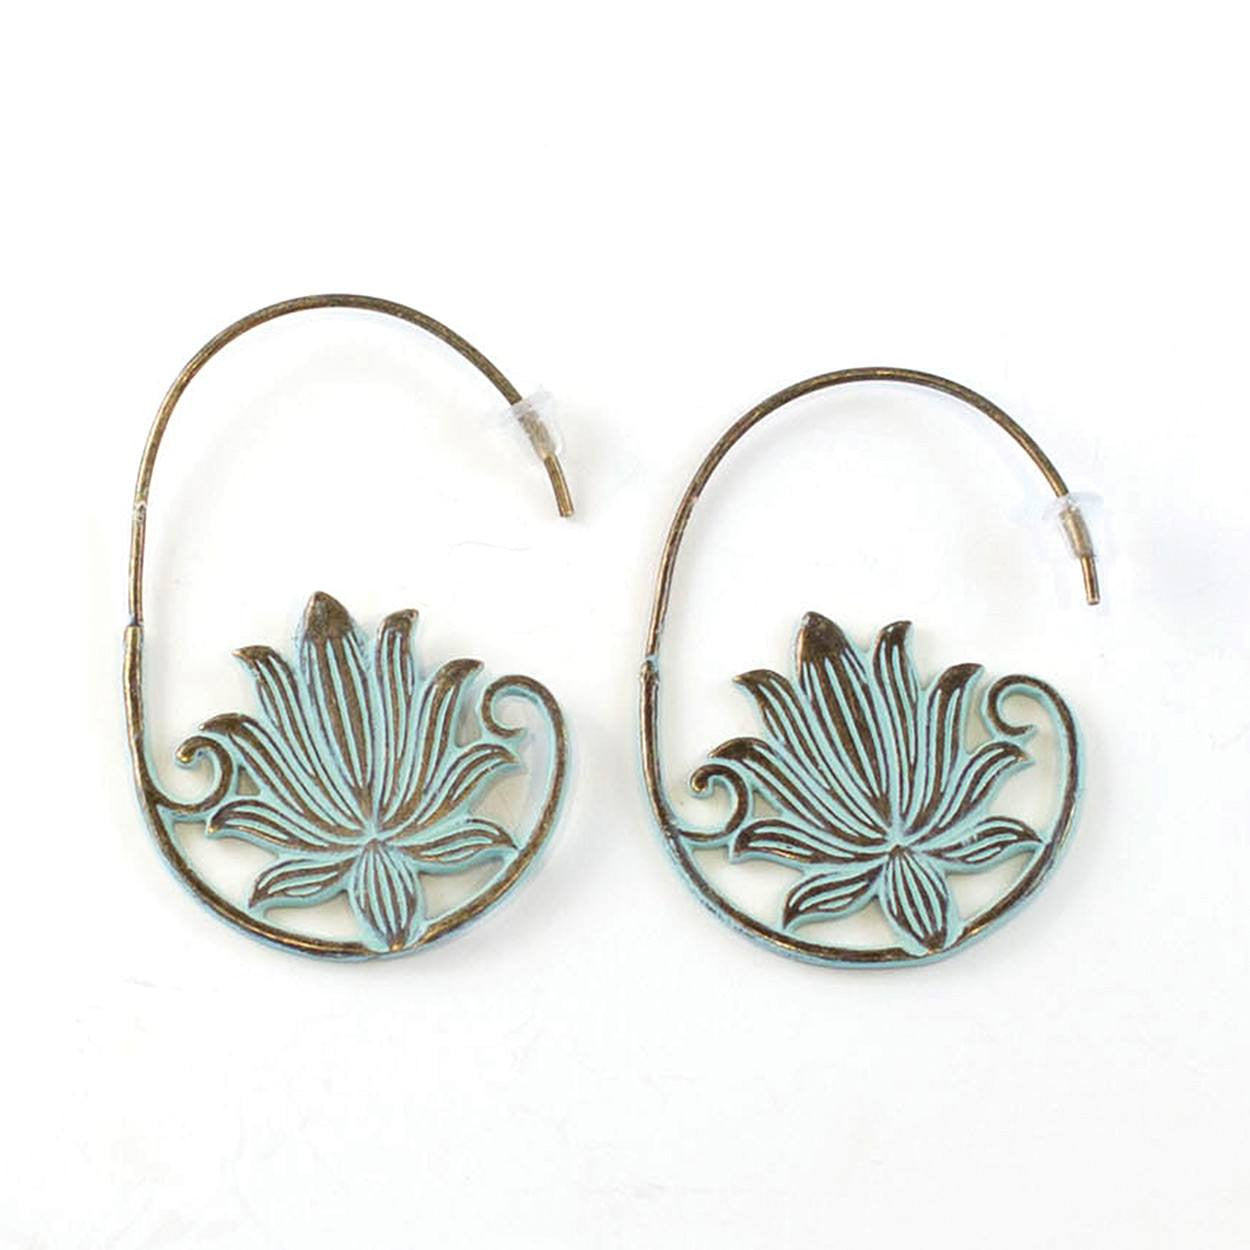 Thrive Earrings